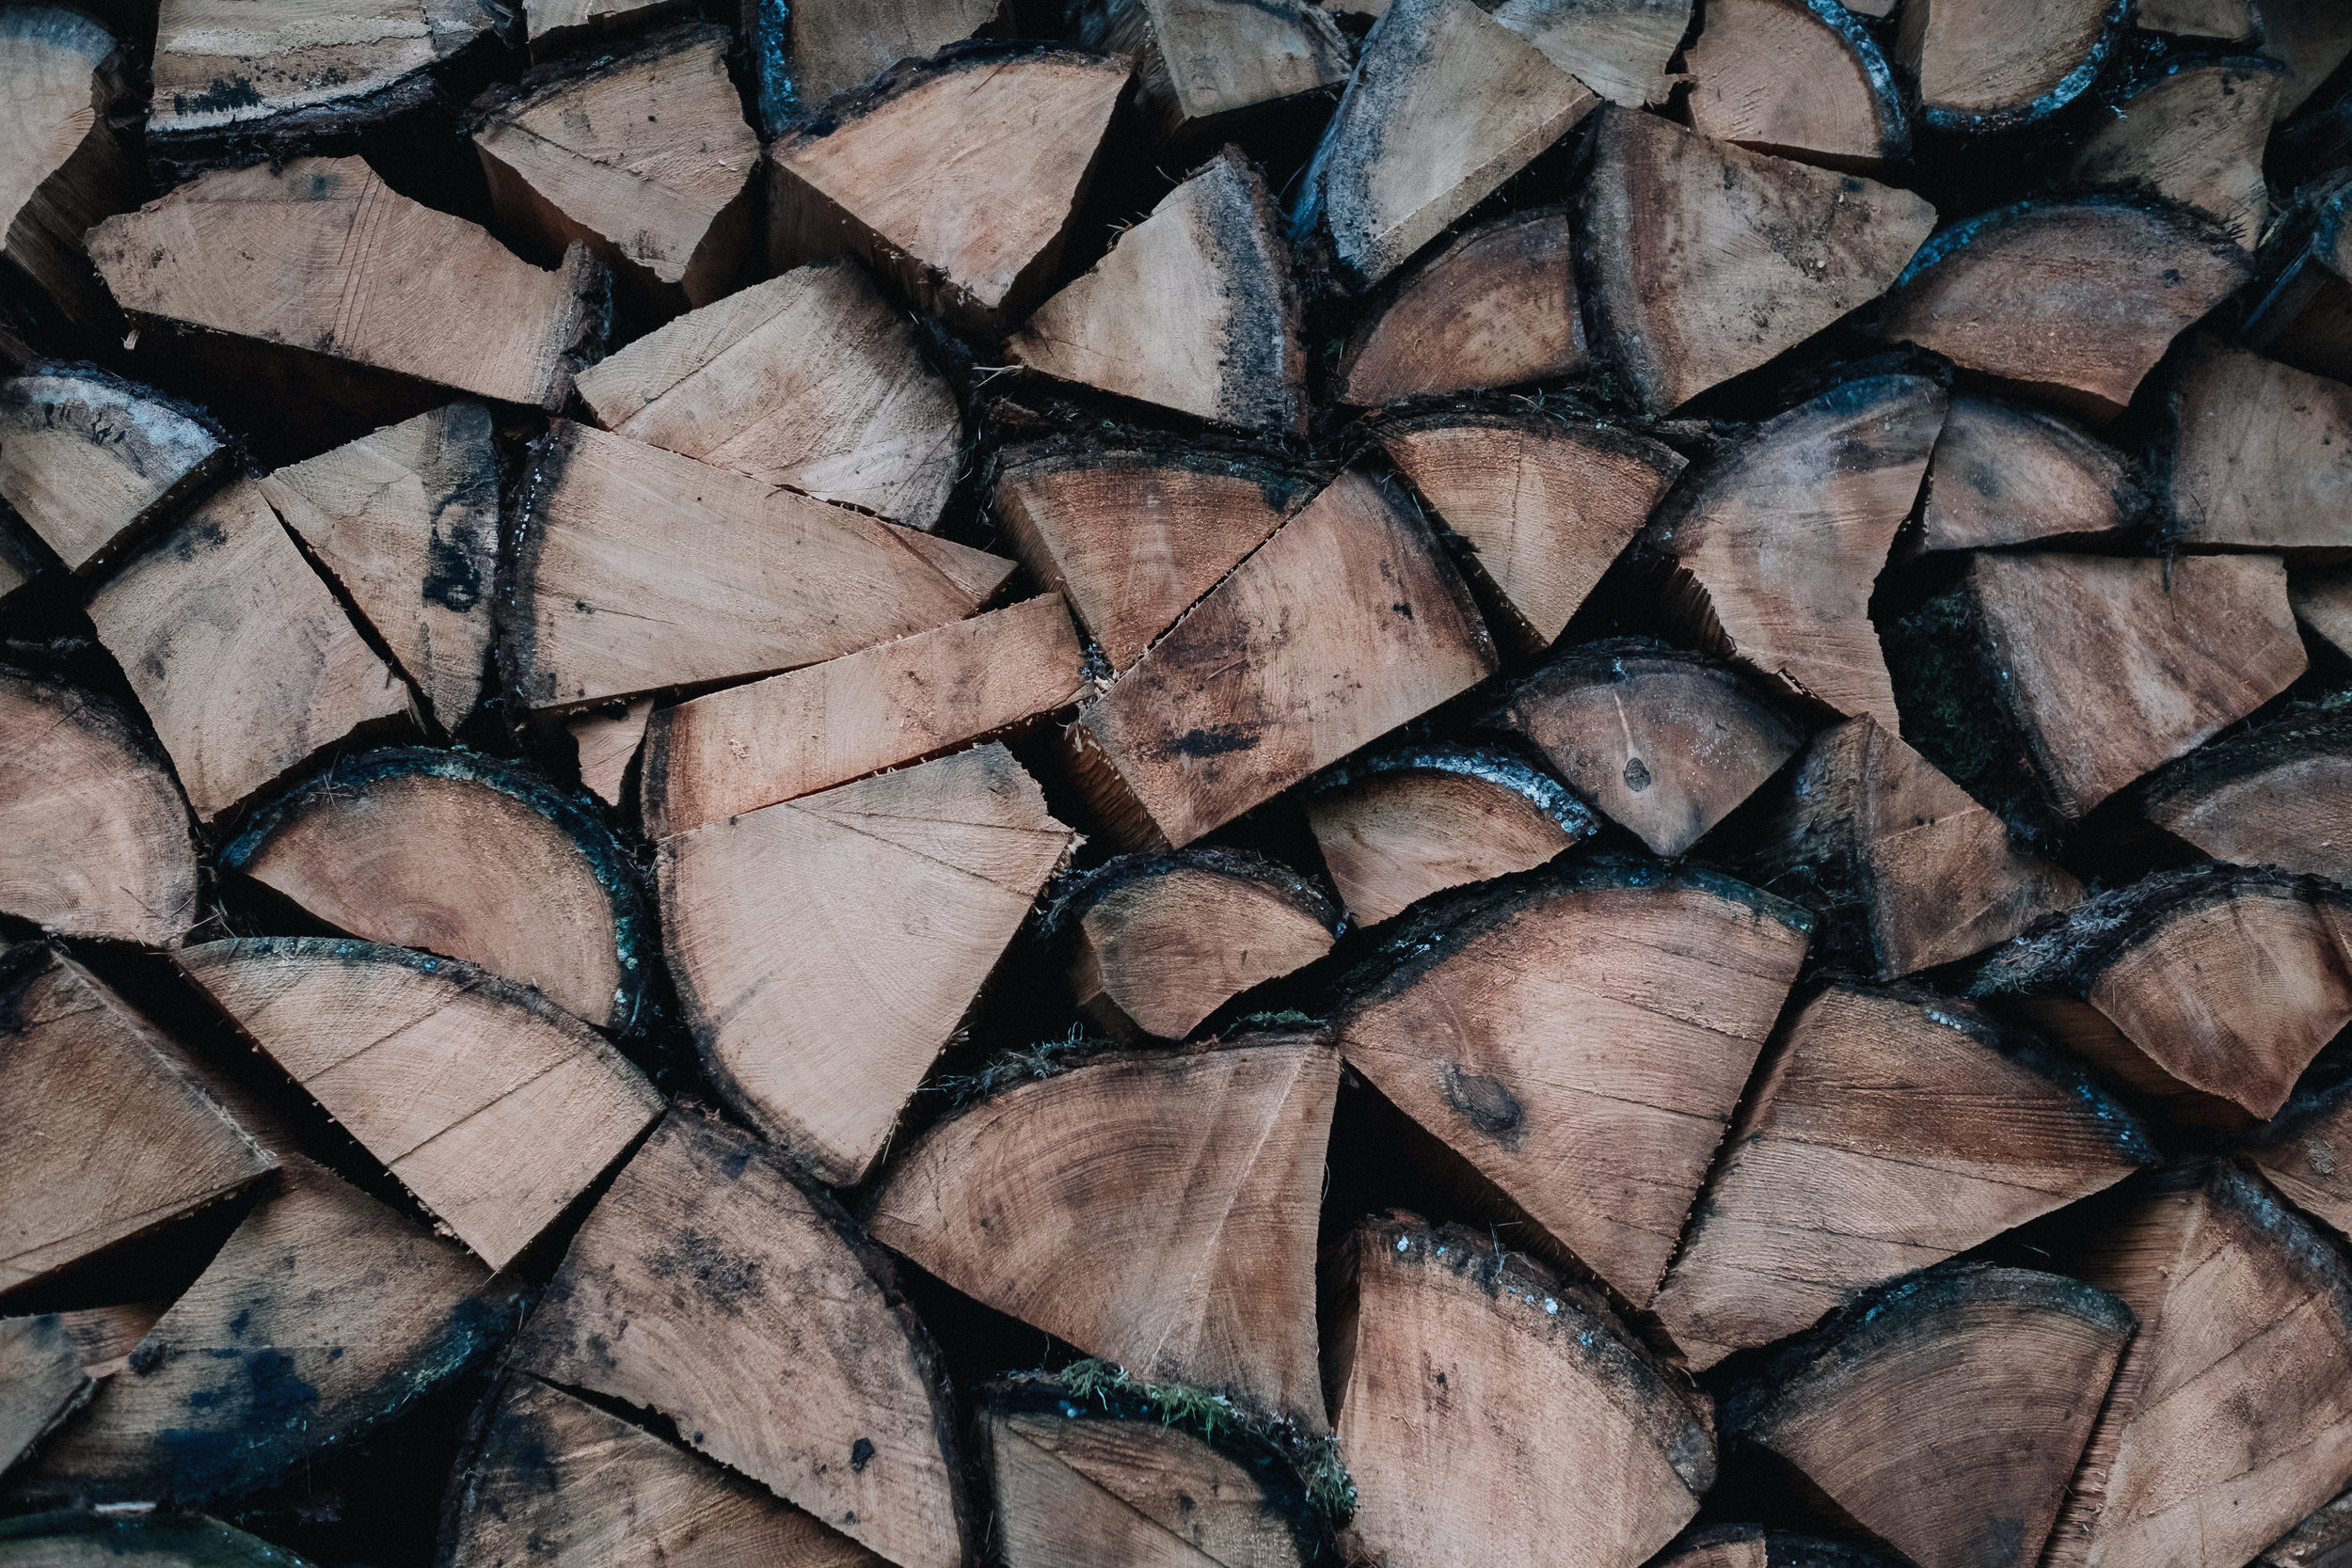 Logs staked in the Scandinavian way